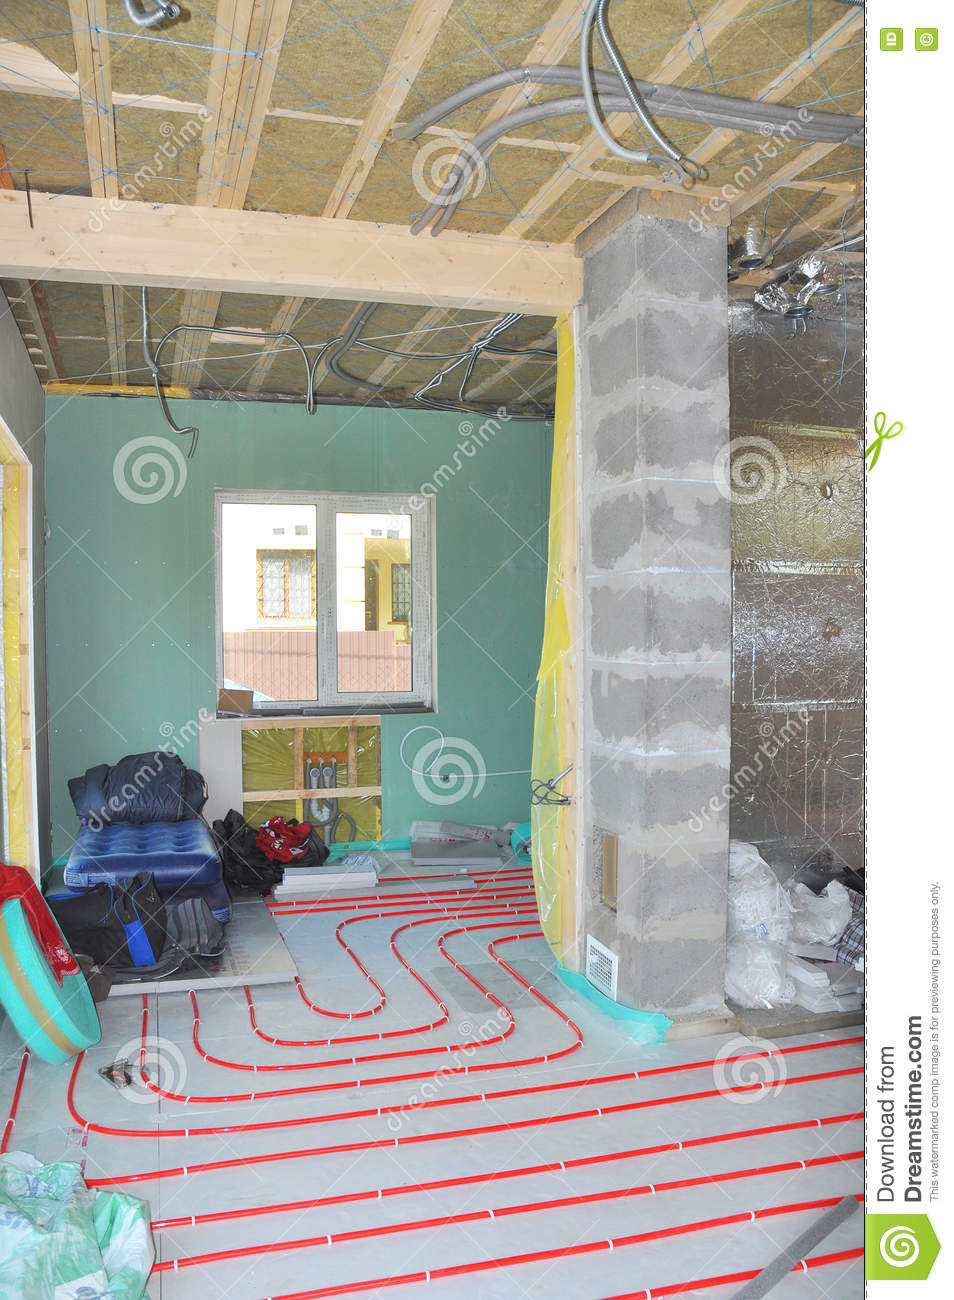 Ordinaire Close Up On Water Floor Heating System Installation, Interior Walls  Insulation And Soundproofing.